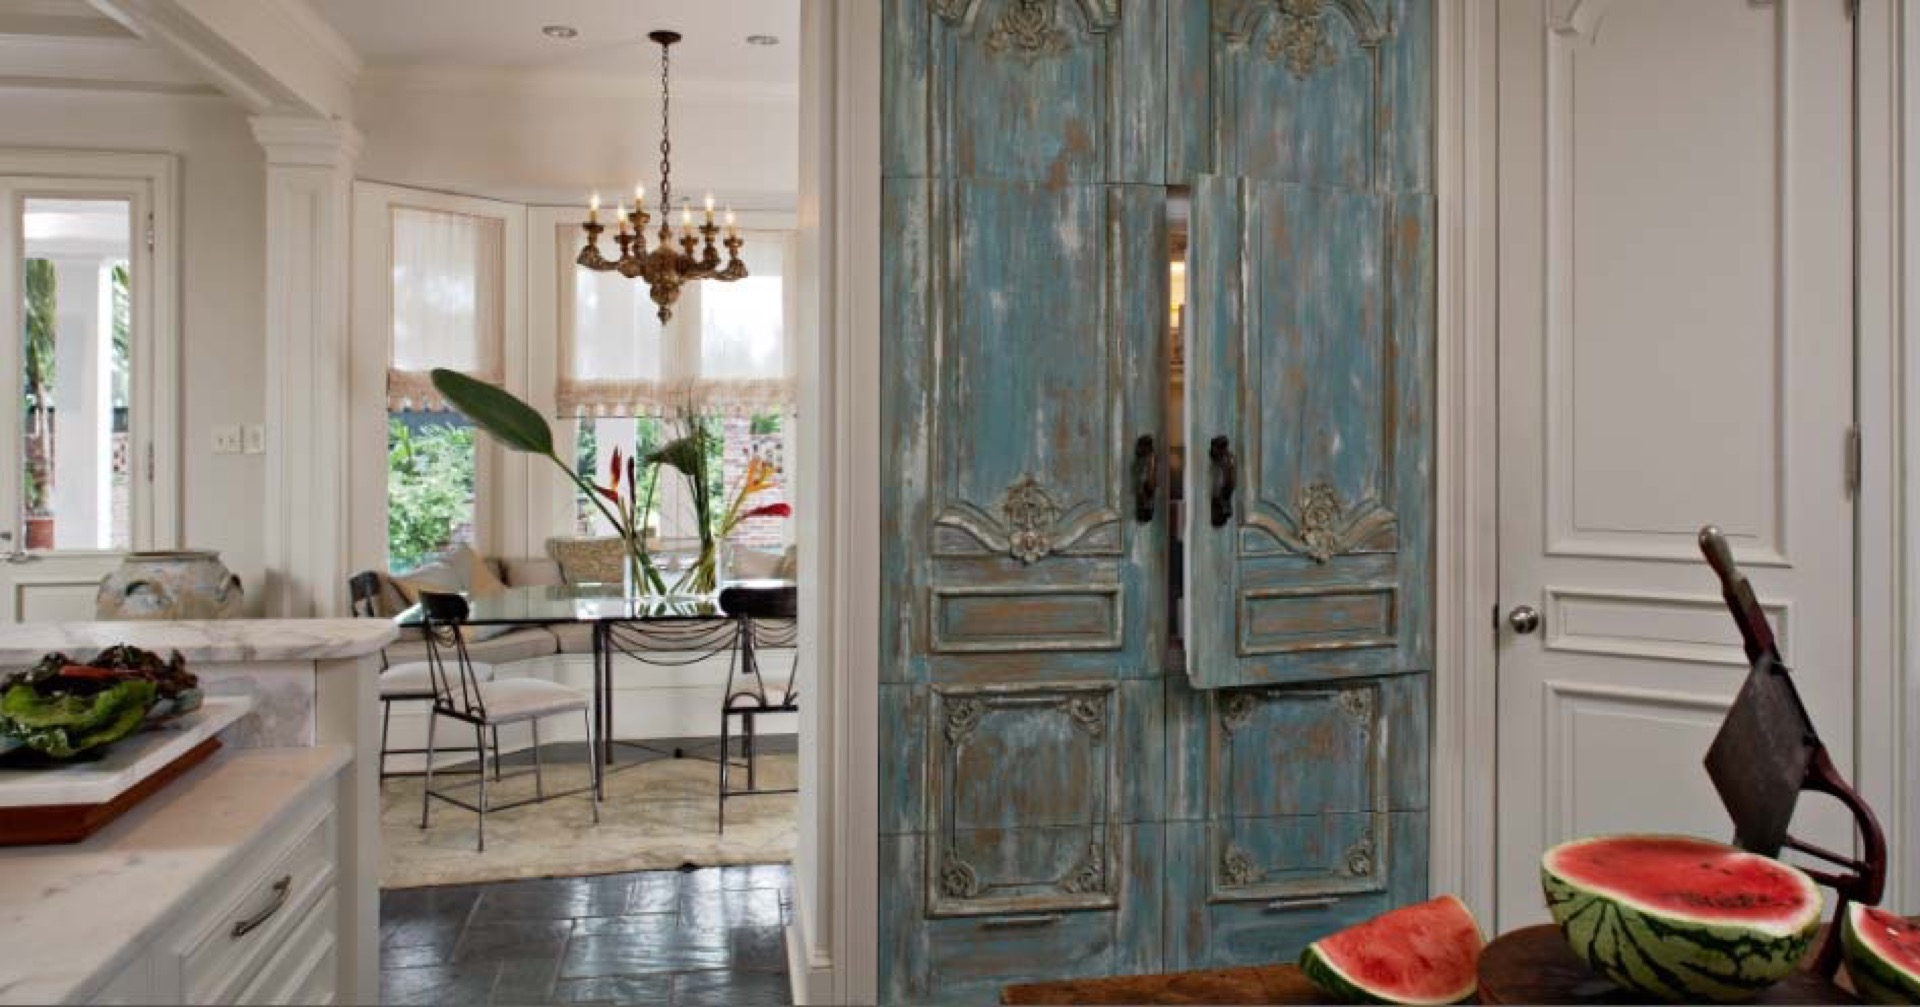 Tara shaw kitchen design new orleans antiques tara shaw for New orleans style kitchen